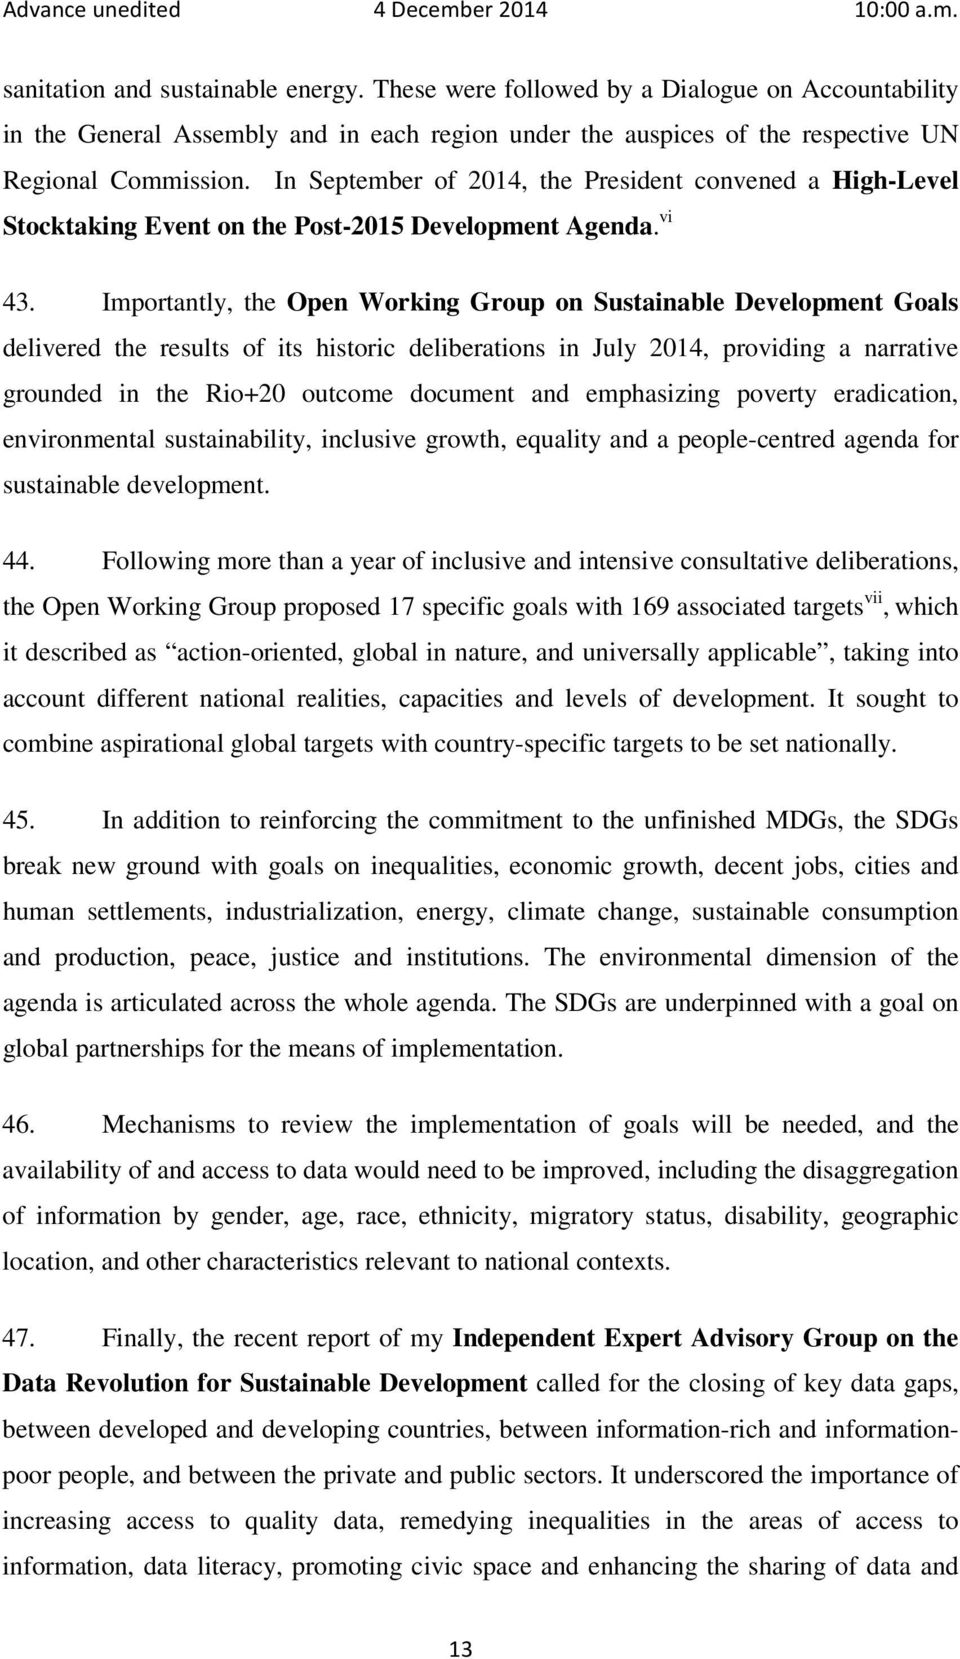 Importantly, the Open Working Group on Sustainable Development Goals delivered the results of its historic deliberations in July 2014, providing a narrative grounded in the Rio+20 outcome document